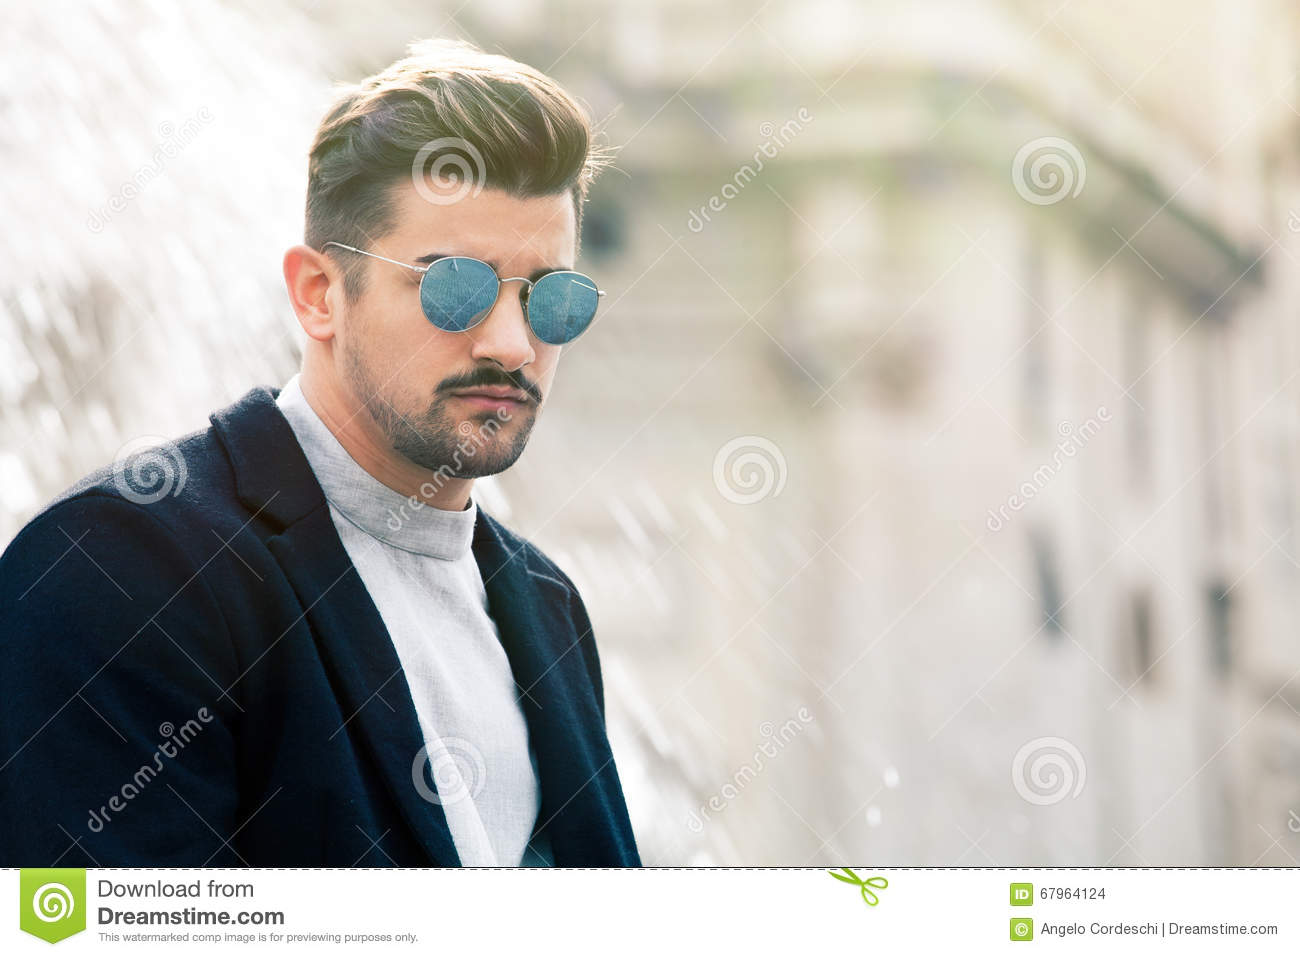 Cool handsome fashion young man. Stylish man with sunglasses A charming young stylish man with sunglasses. Confident attitude with setting in the historic city of Rome, Italy. Fashionable clothes.